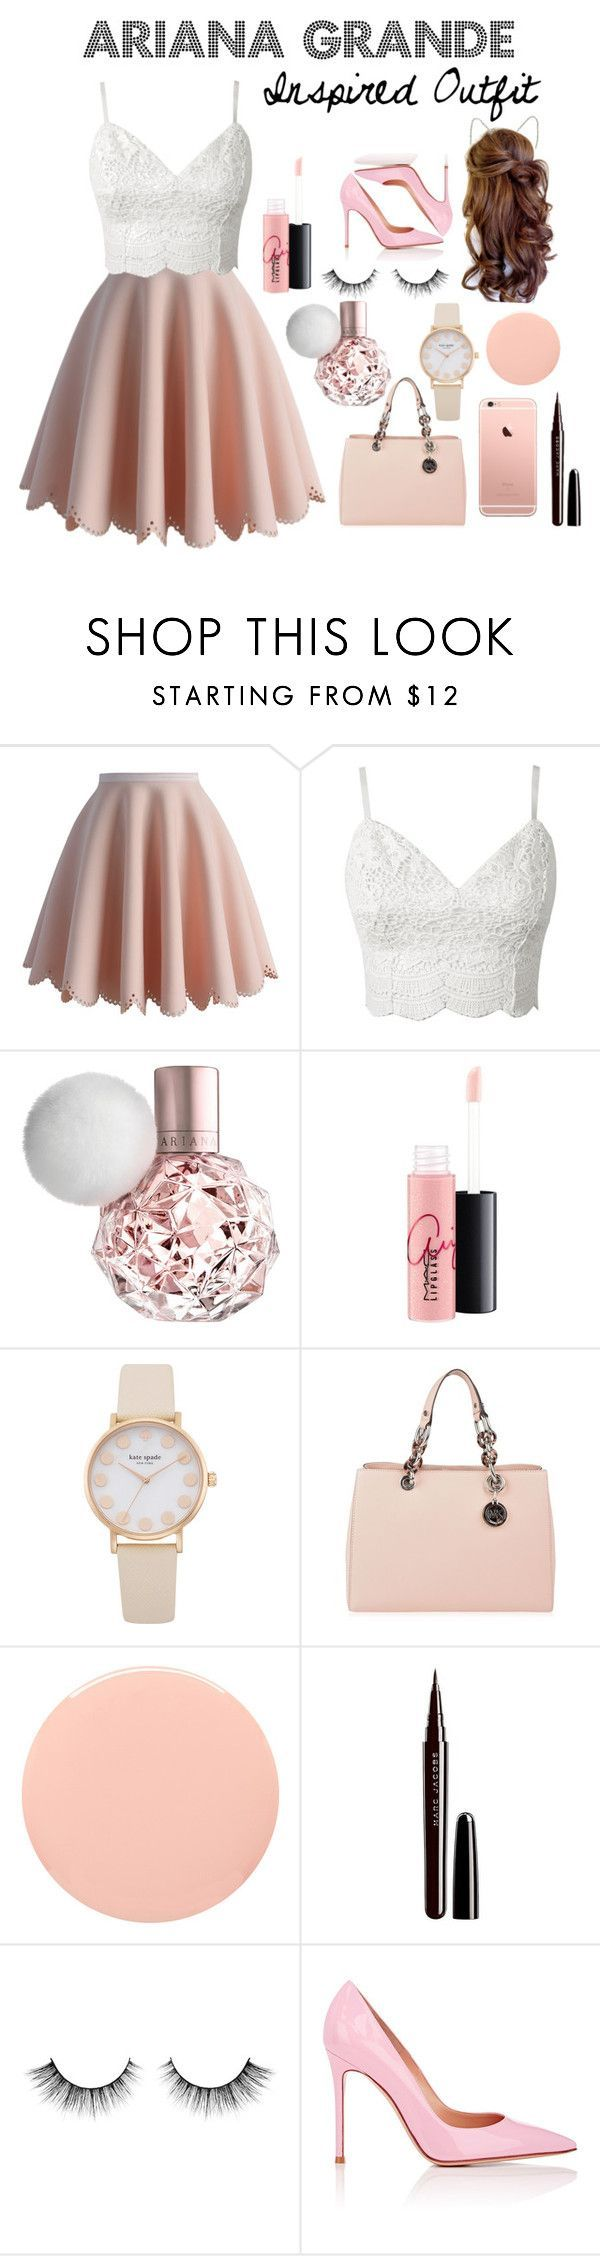 Ariana Grande Inspired Outfit by victoriafiocco ❤ liked on Polyvore featuring Chicwish, MAC Cosmetics, MICHAEL Michael Kors, Smith  Cult, Marc Jacobs, Gianvito Rossi, womens clothing, women, female and woman